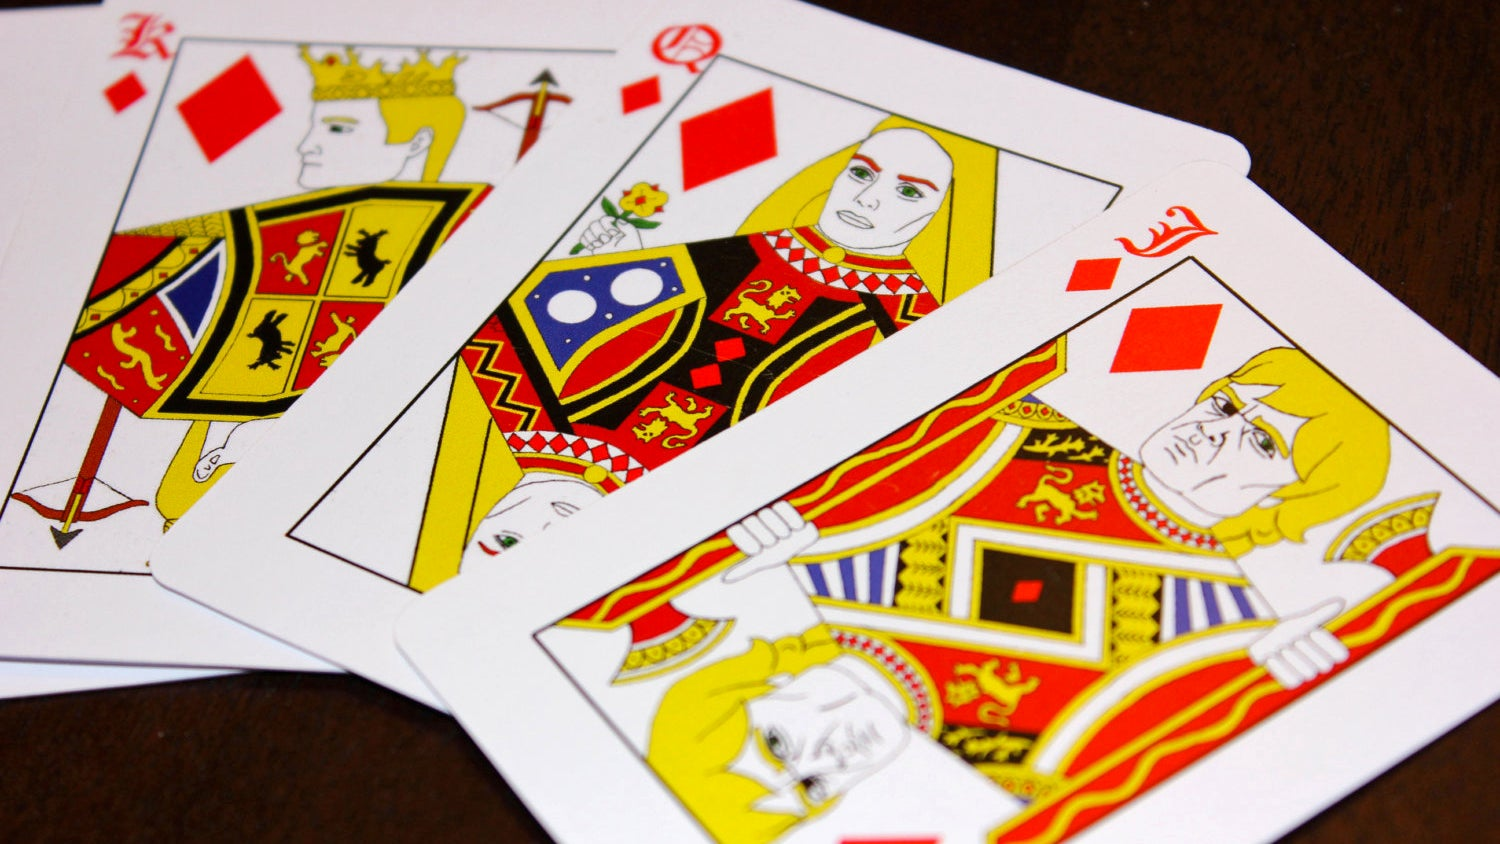 A Deck of Cards Featuring Kings, Queens, and Other Characters From Game of Thrones